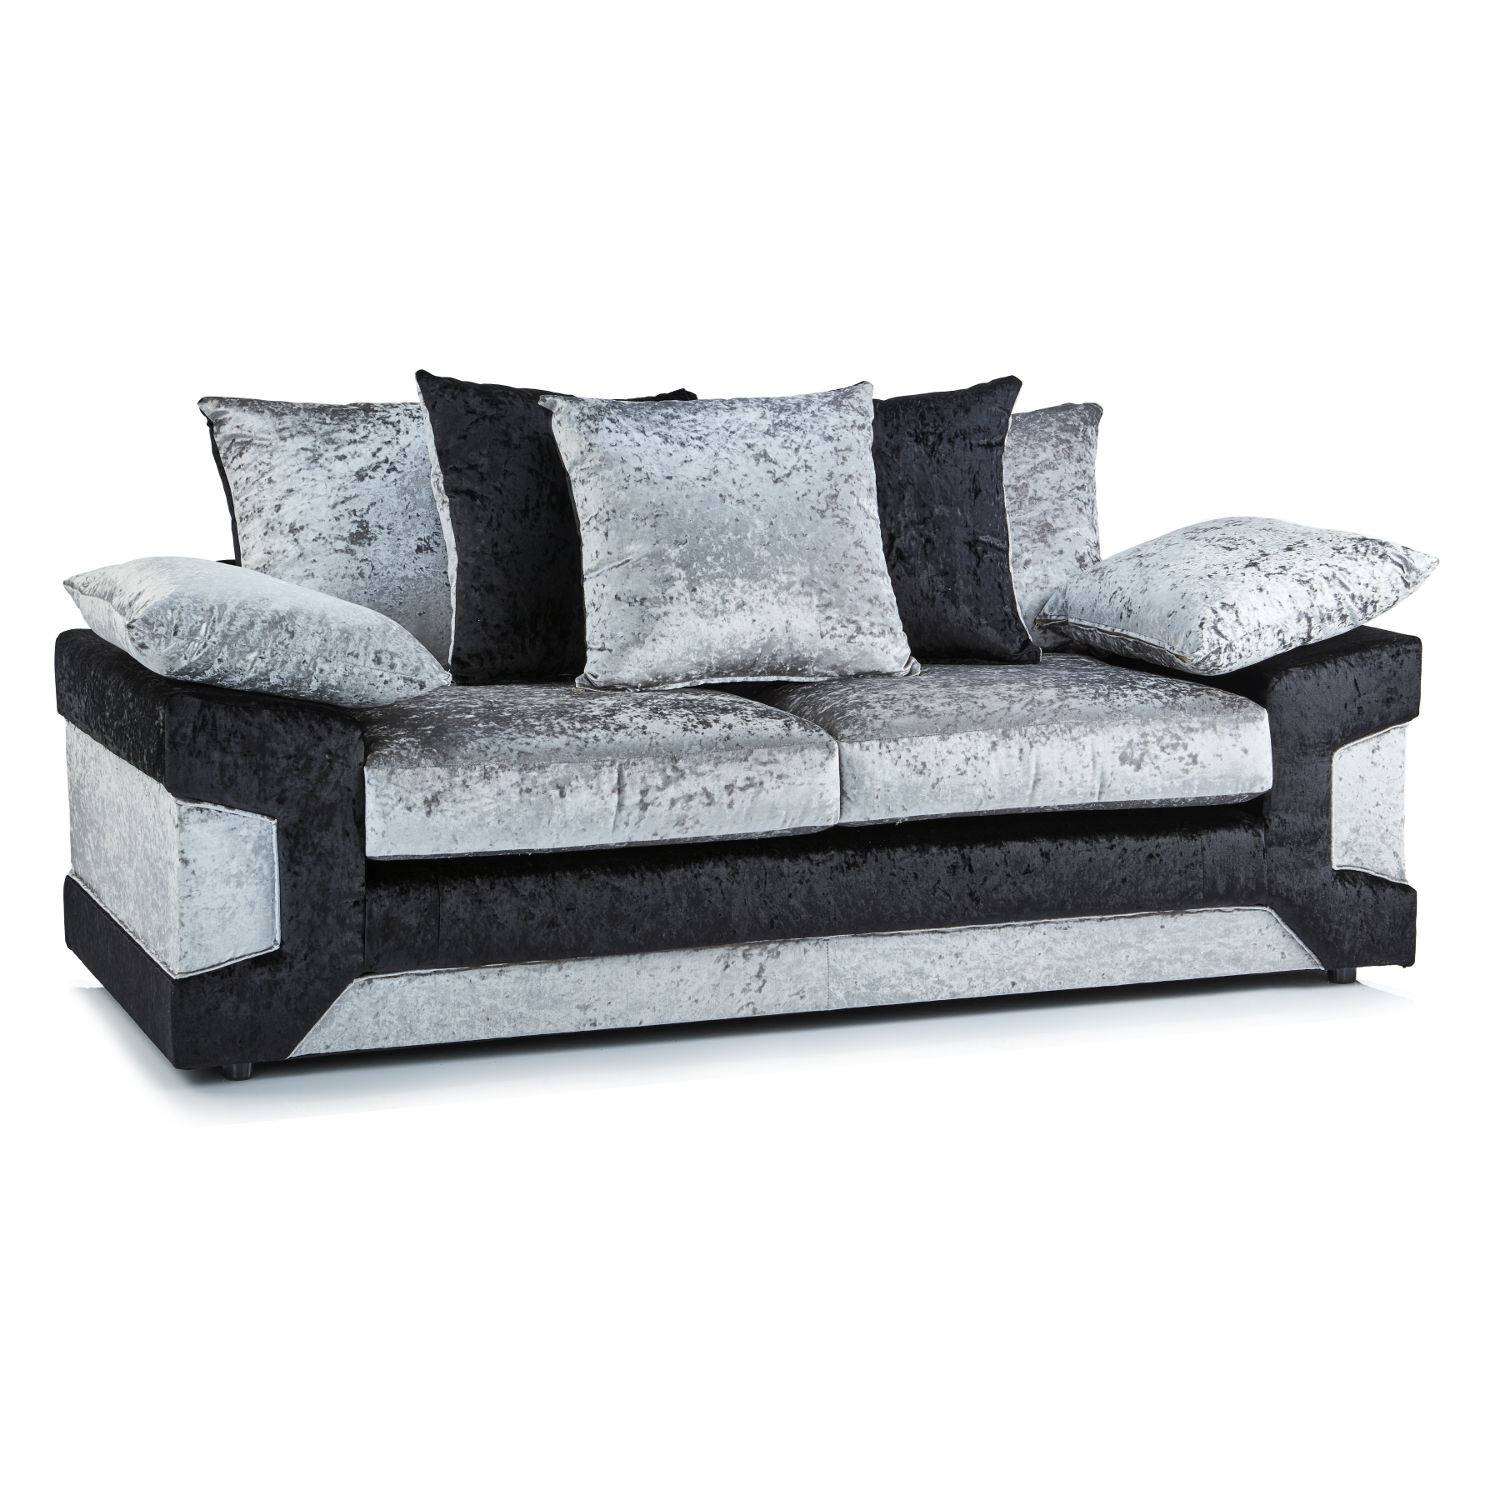 Crushed Velvet Furniture | Sofas, Beds, Chairs, Cushions regarding Black Velvet Sofas (Image 8 of 30)